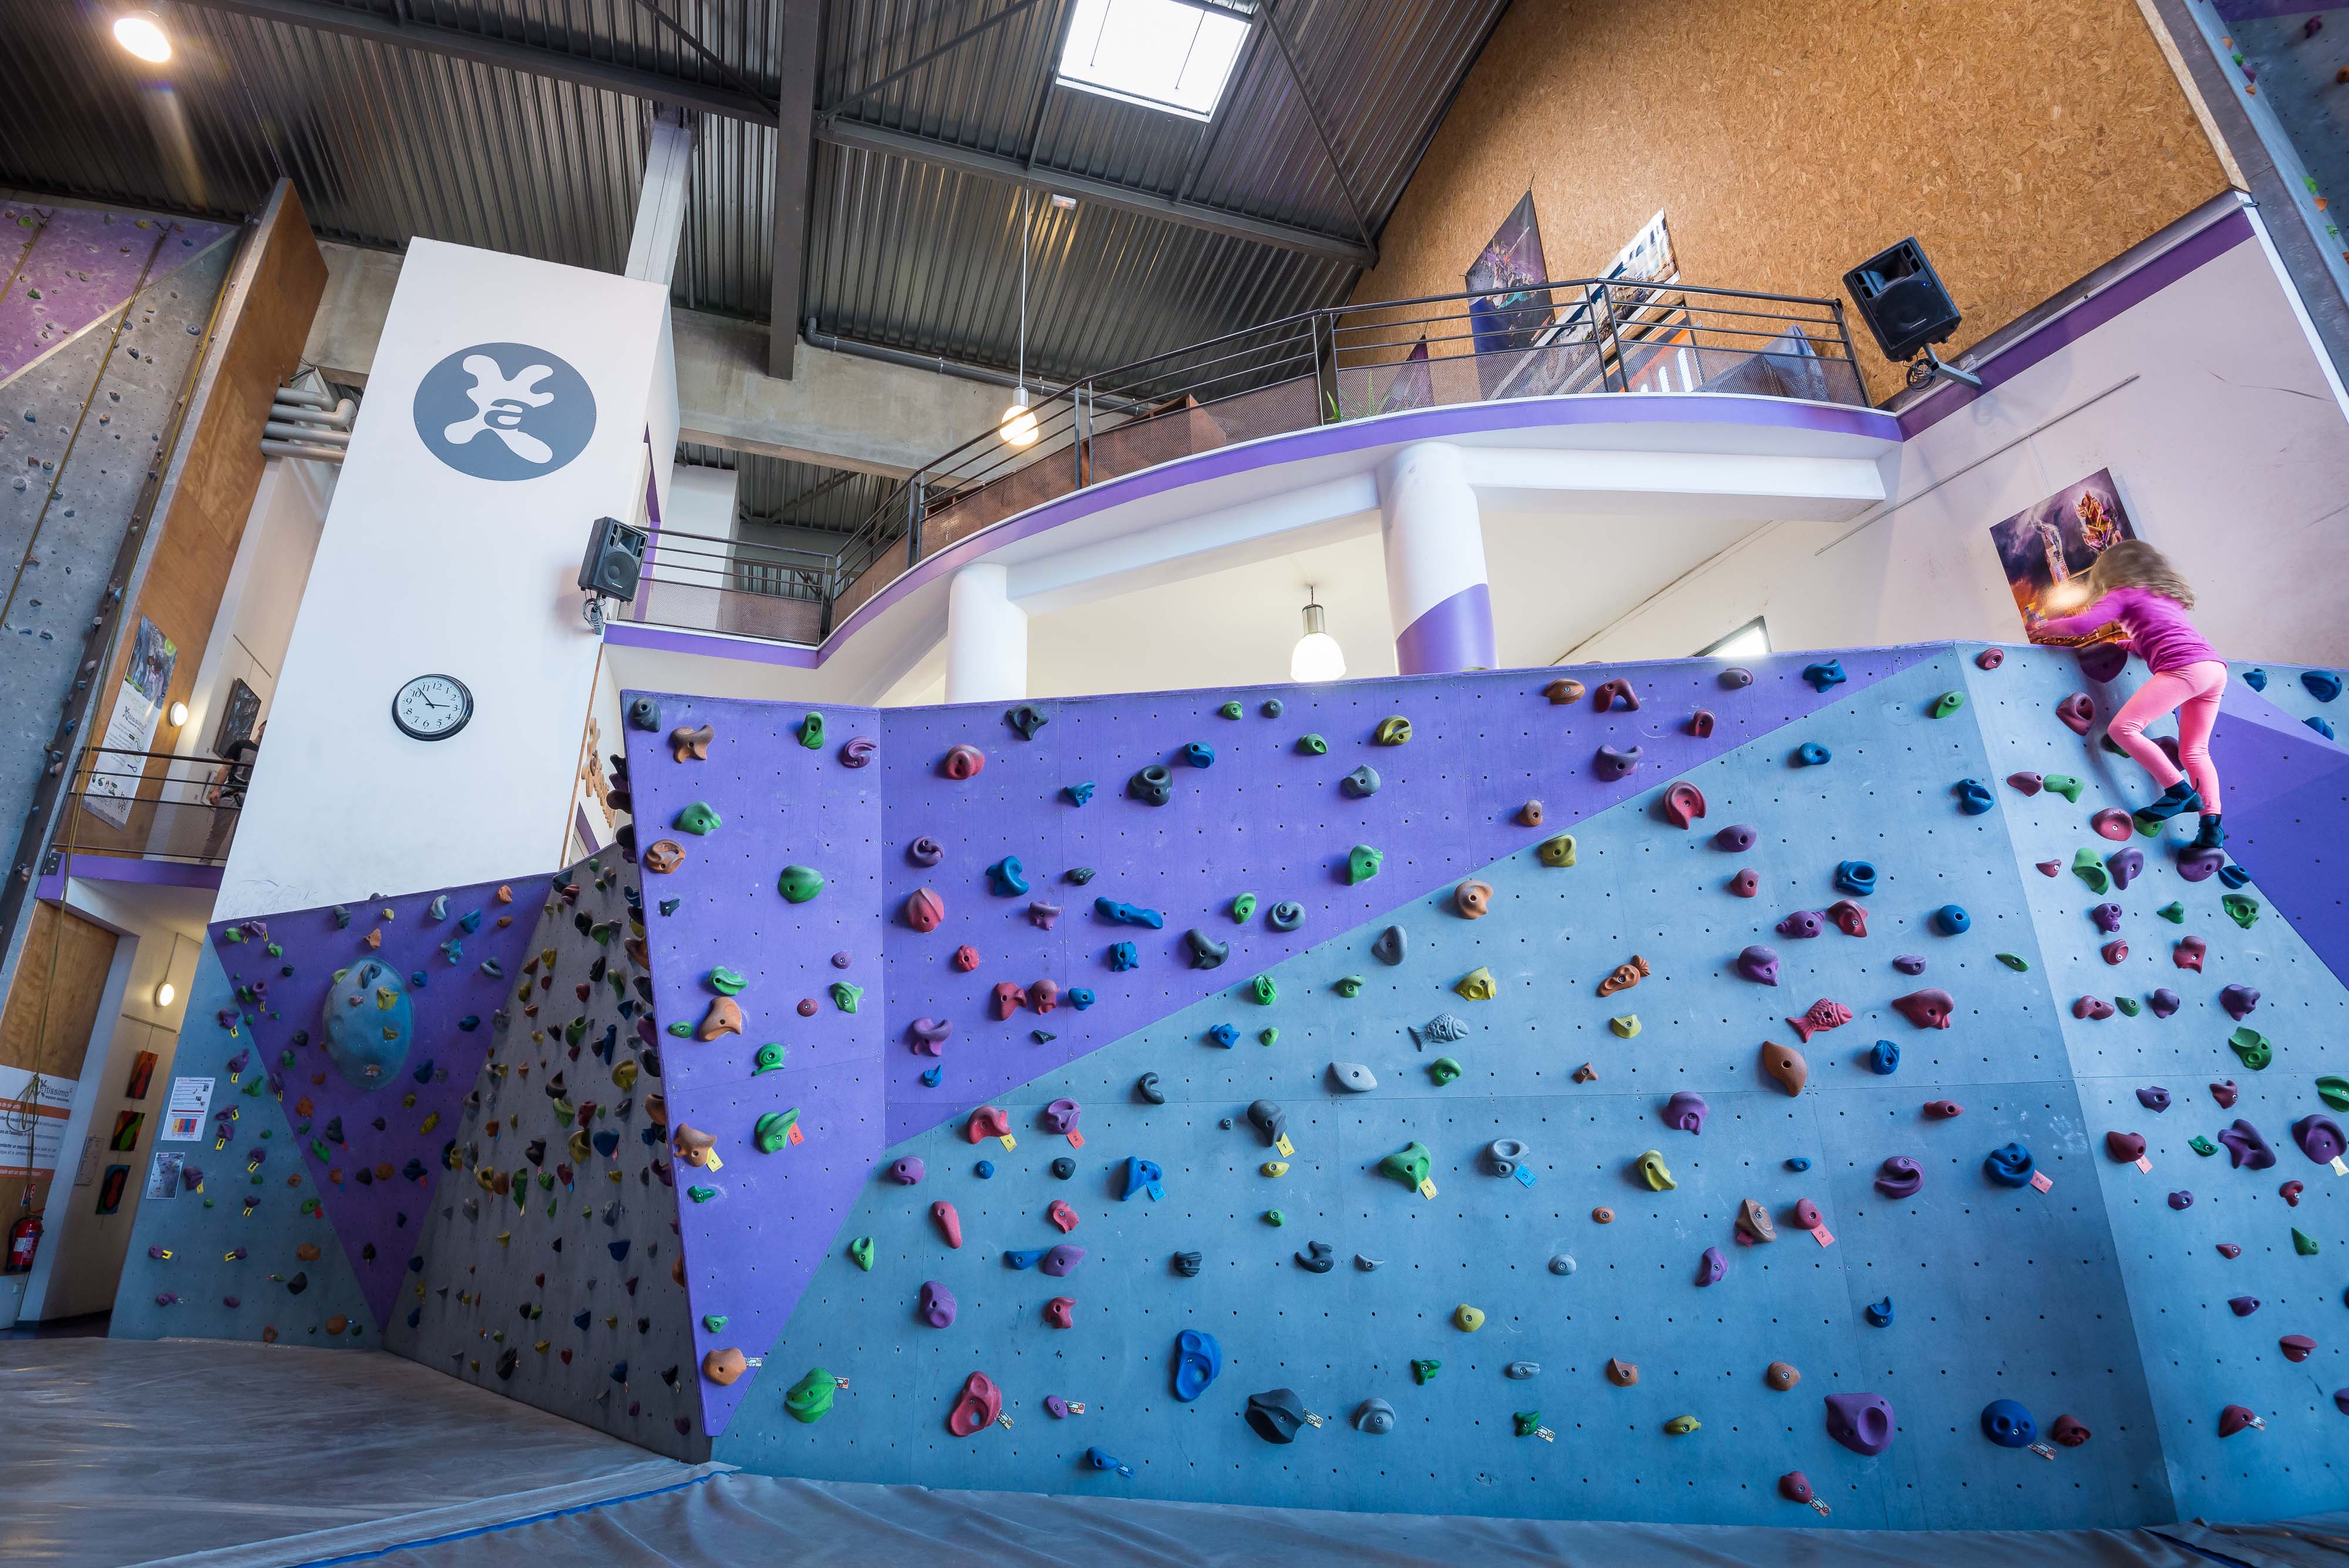 Rock Shop Montpellier Altissimo Montpellier Odysseum Climbing Wall Montpellier